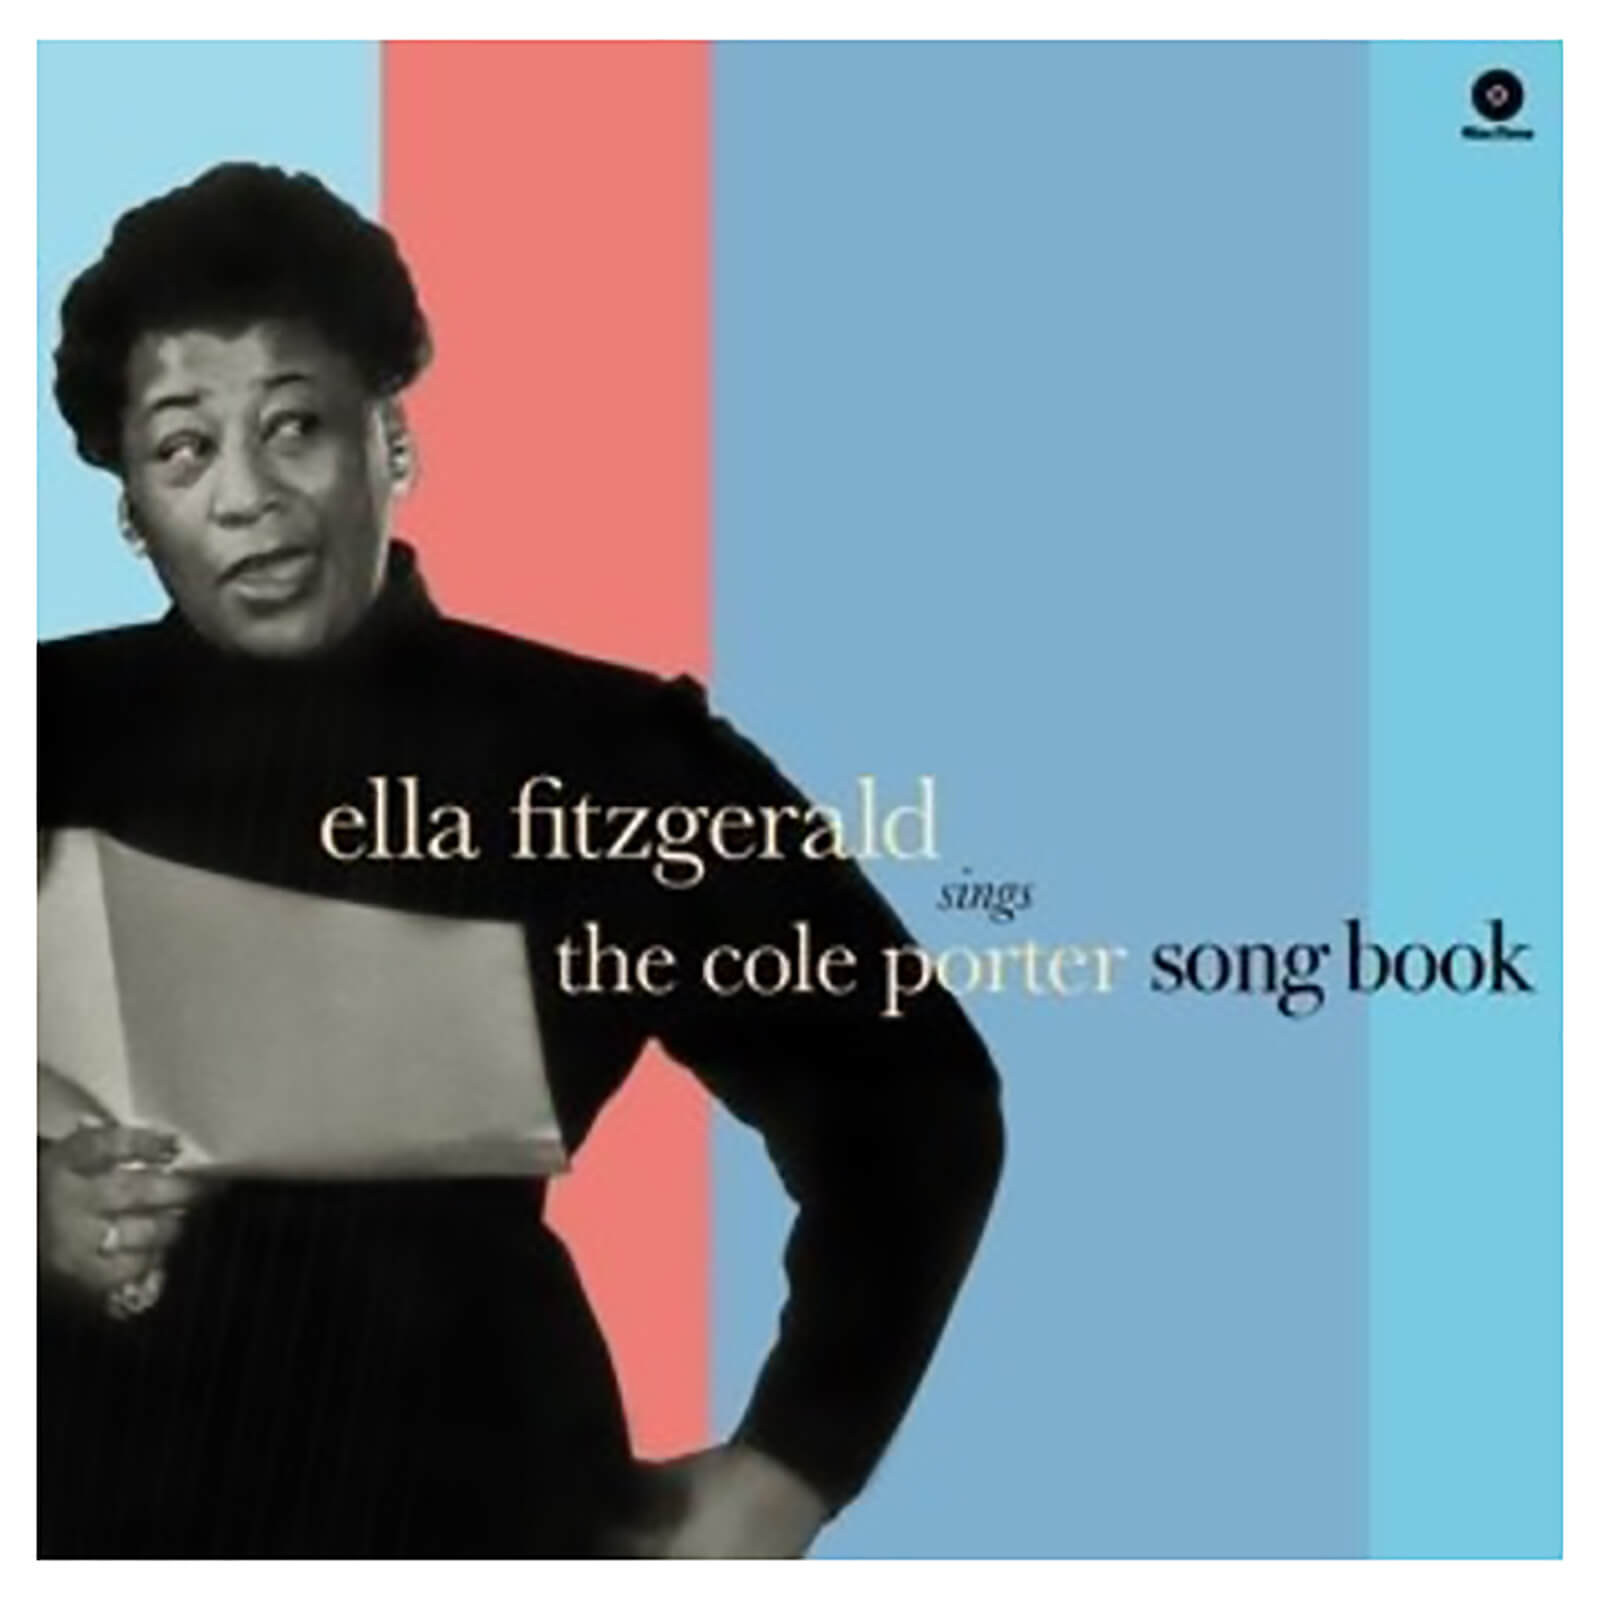 Ella Fitzgerald Sings The Cole Porter Songbook - Vinyl